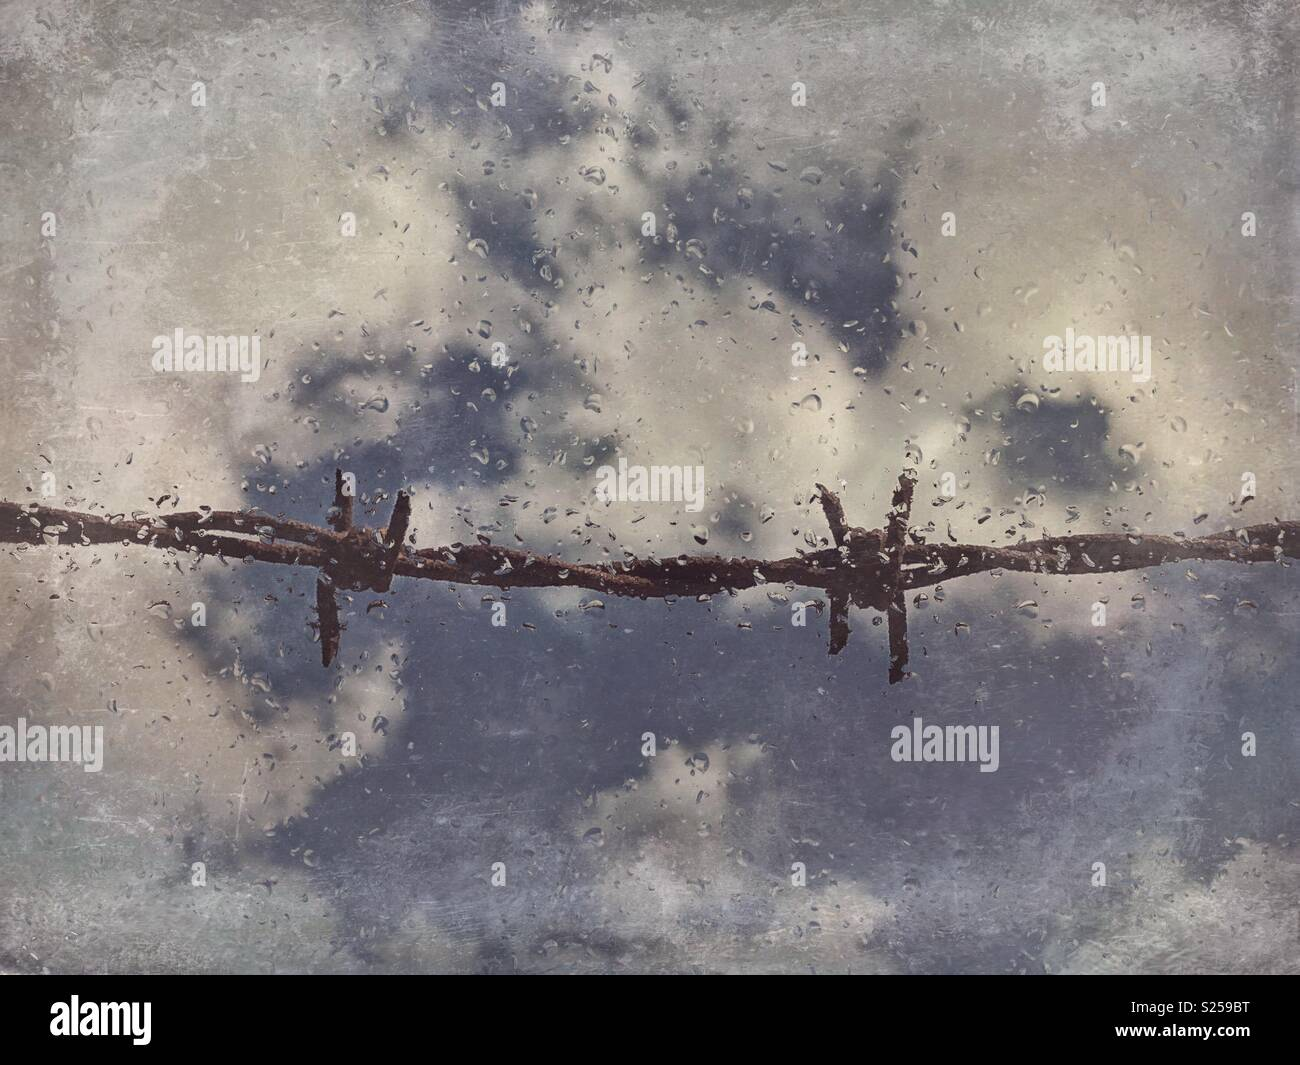 Barbed wire seen through dirty window with raindrops - Stock Image